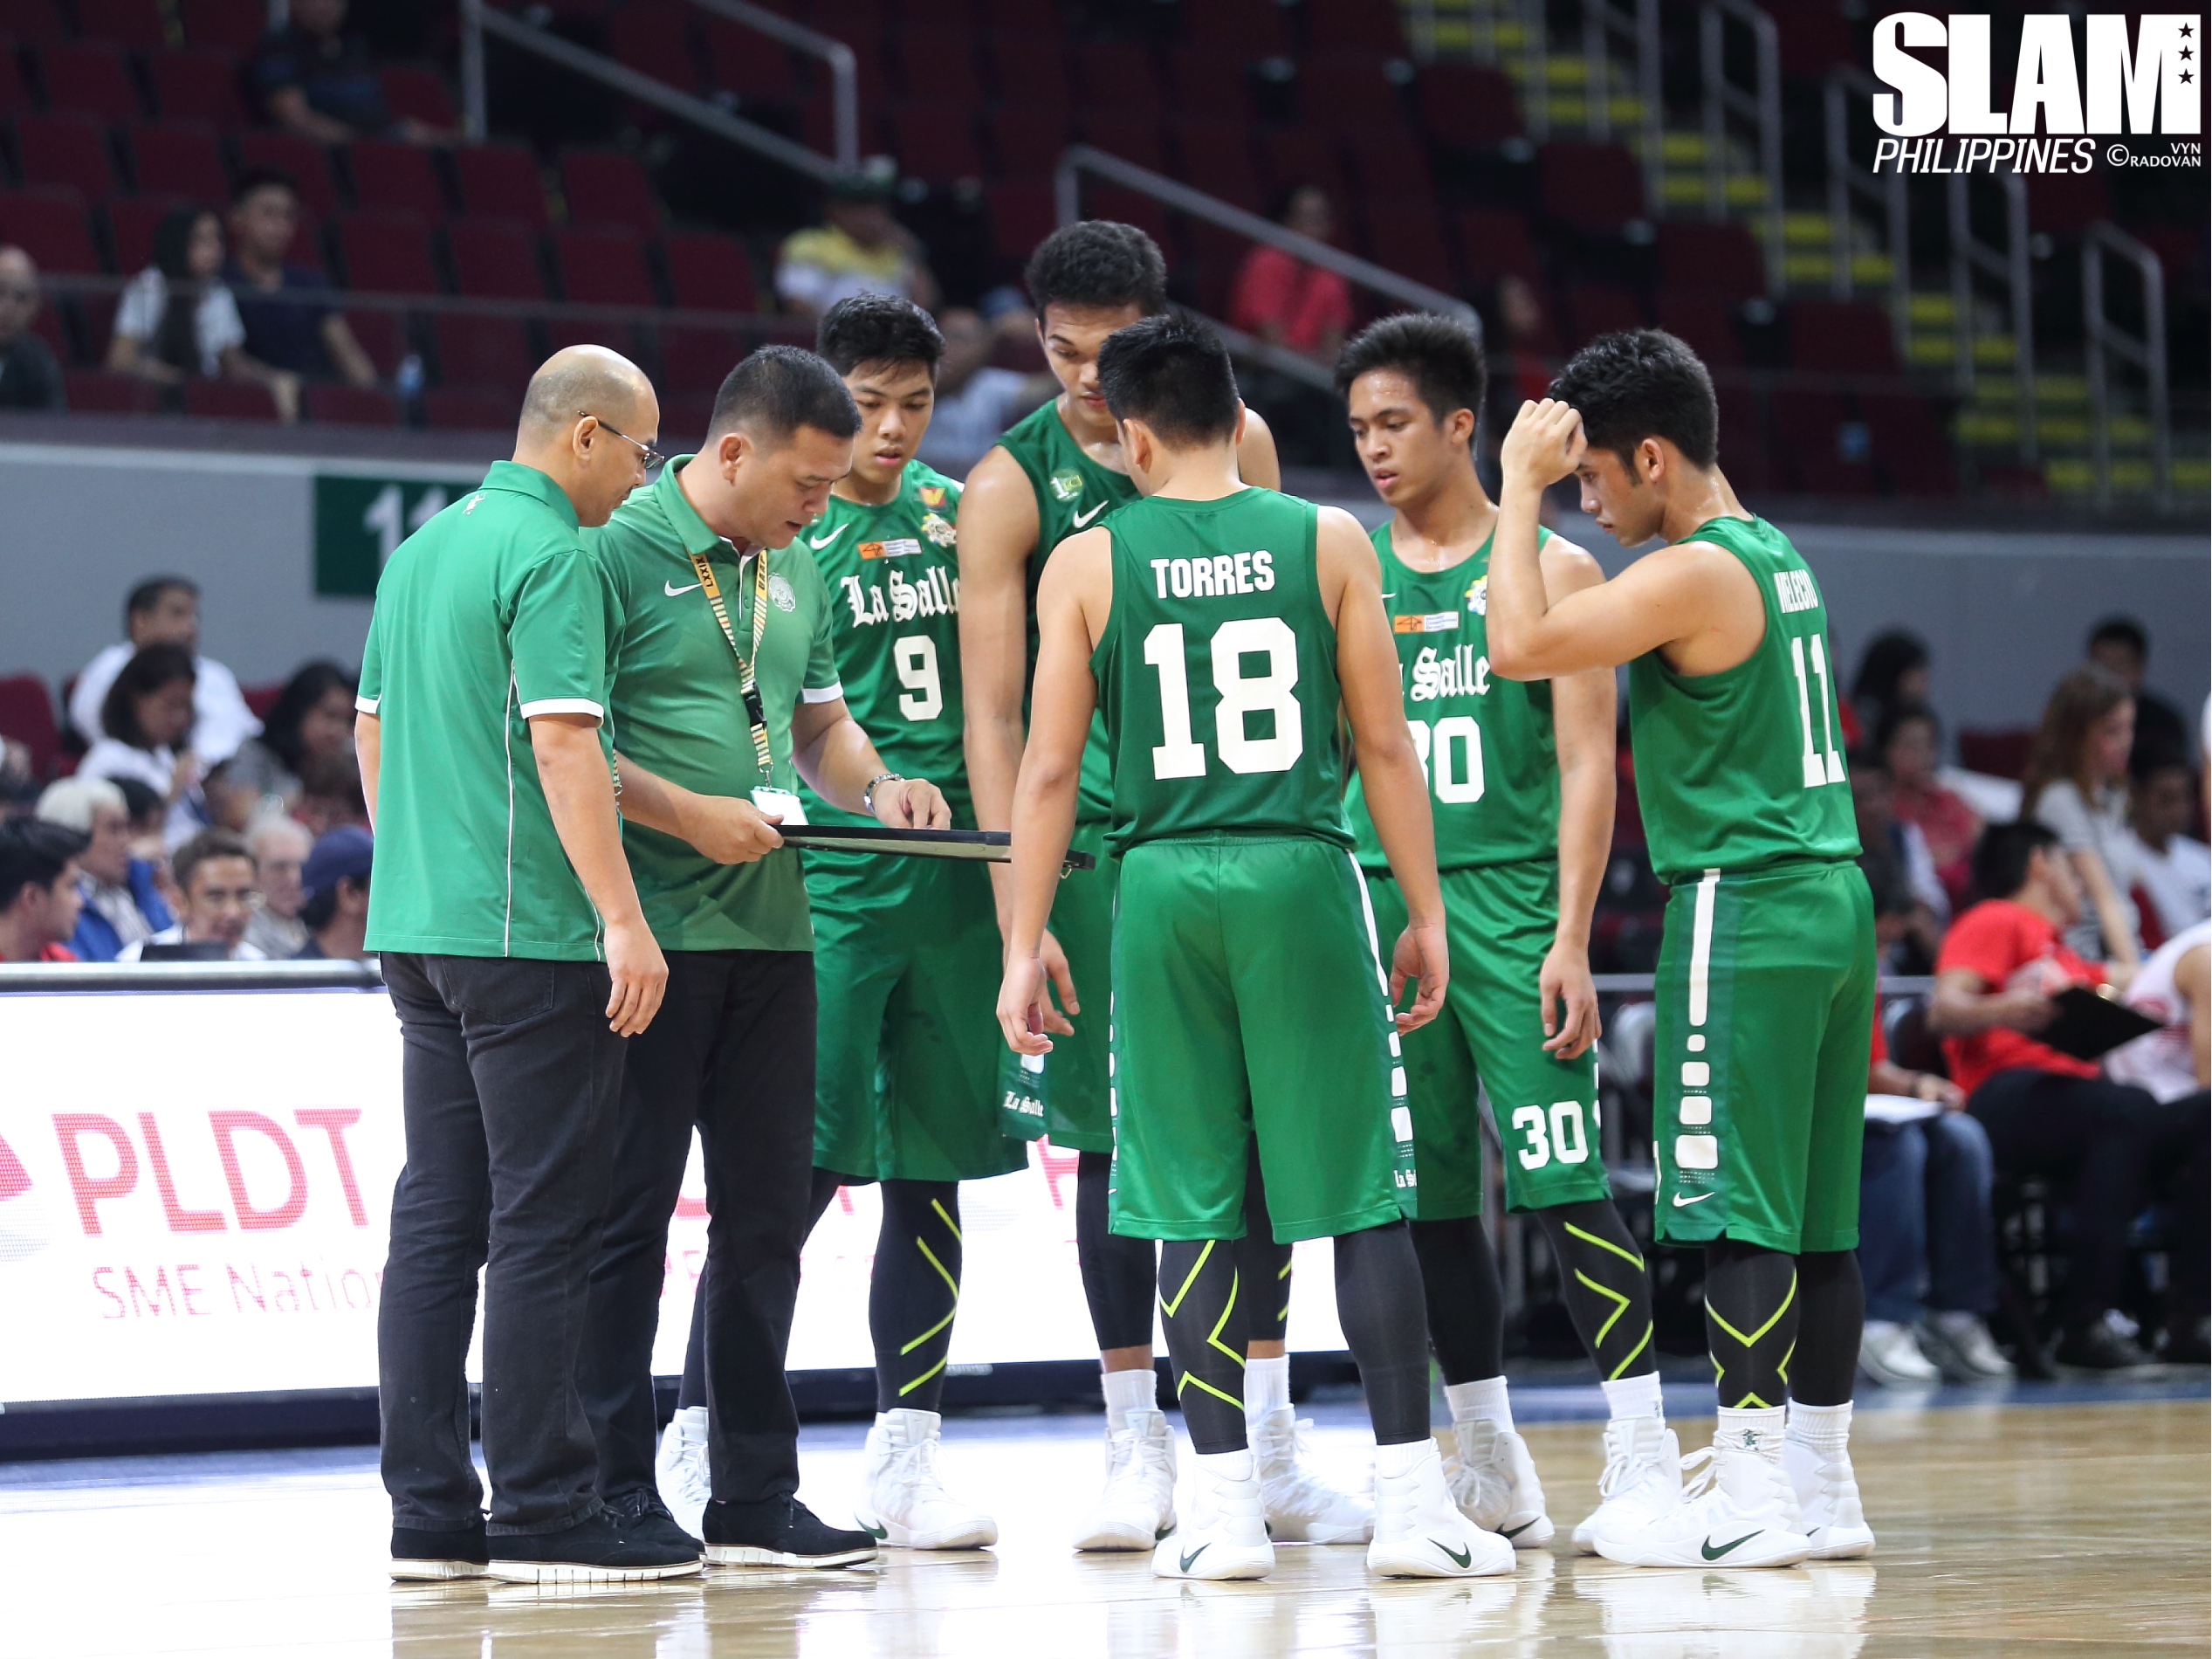 uaap-dlsu-vs-ue-september-28-2016-vr-5